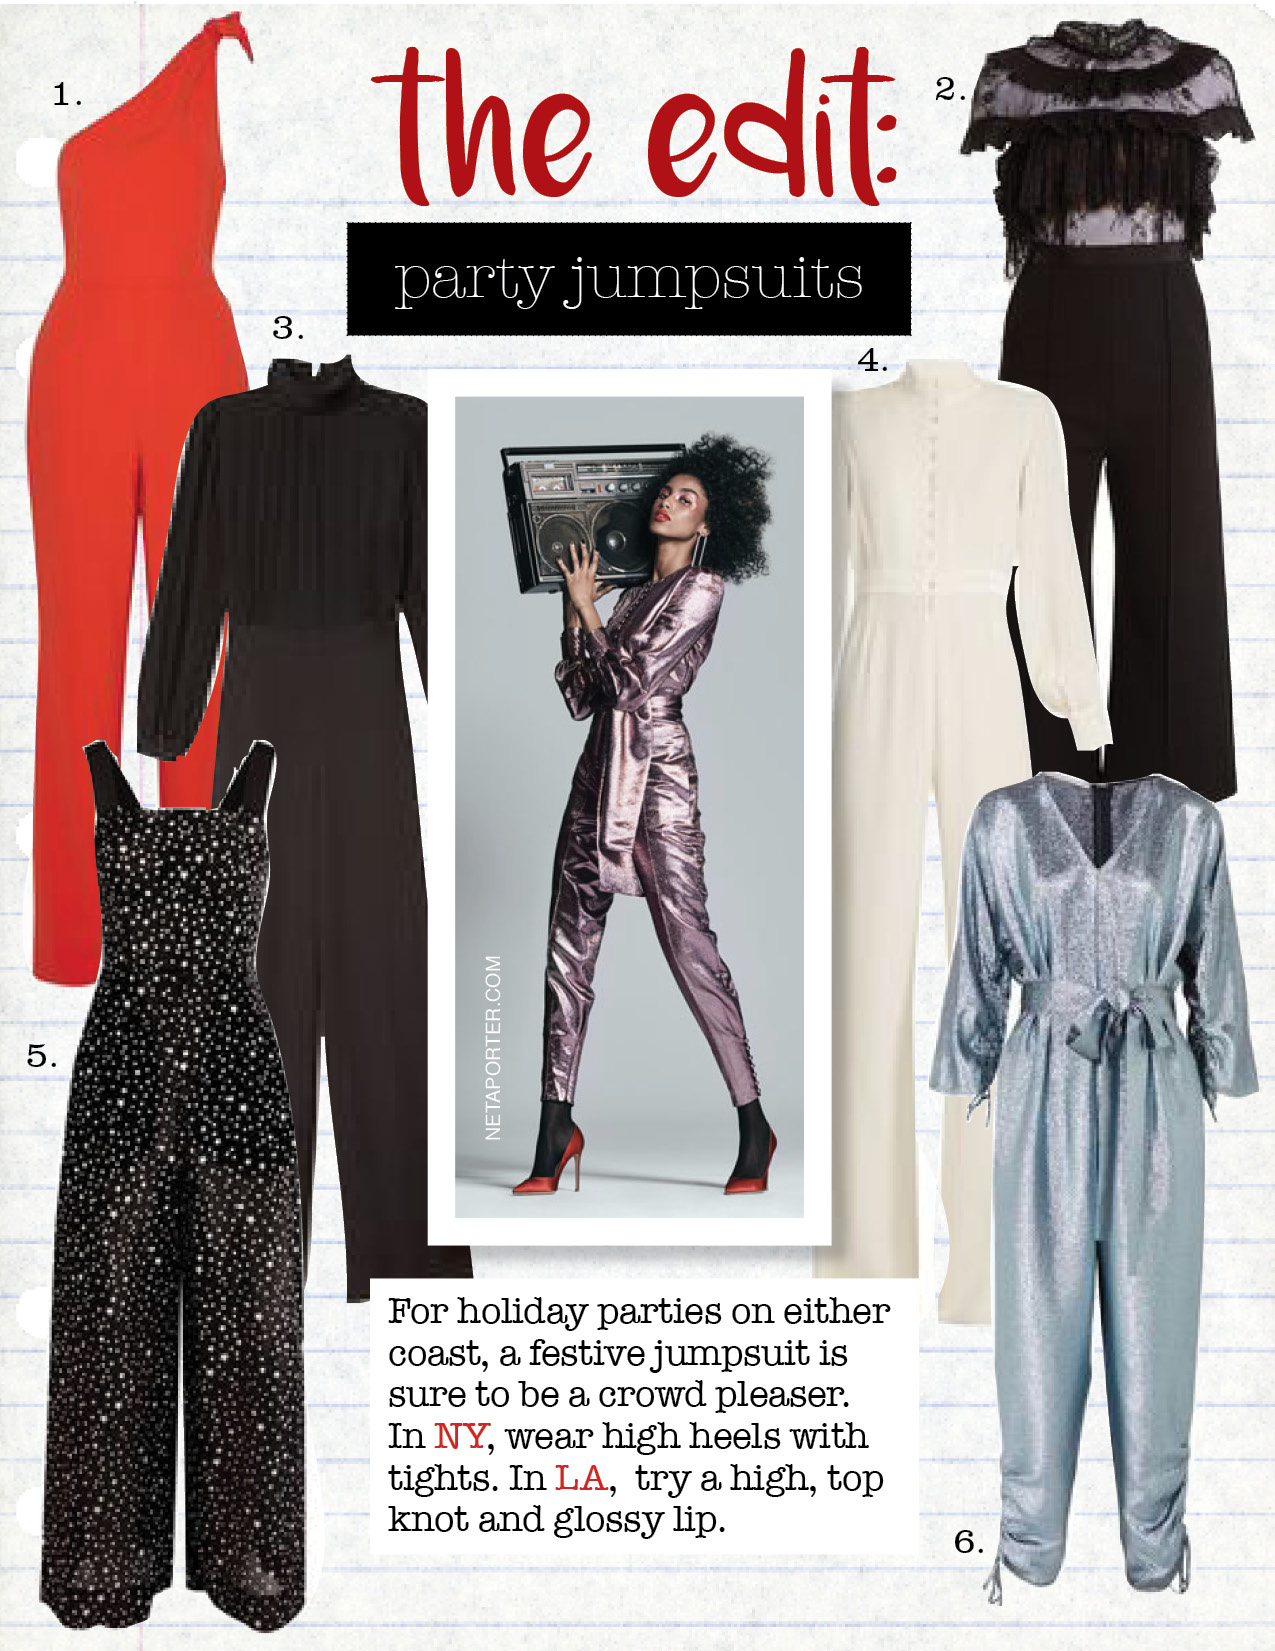 1. diane von furstenberg knotted one-shoulder jumpsuit, $329,  net-a-porter.com  2. self-portrait ruffled-lace wide-leg cady jumpsuit, $438,  matchesfashion.com  3. goop label gillian party jumpsuit, $795,  goop.com  4. goat forte wide-leg crepe-cady jumpsuit, $967,  matchesfashion.com  5. diane von furstenberg printed cotton and silk jumpsuit, $175,  net-a-porter.com  6. stella mccartney padma lame jumpsuit, $1875,  net-a-porter.com